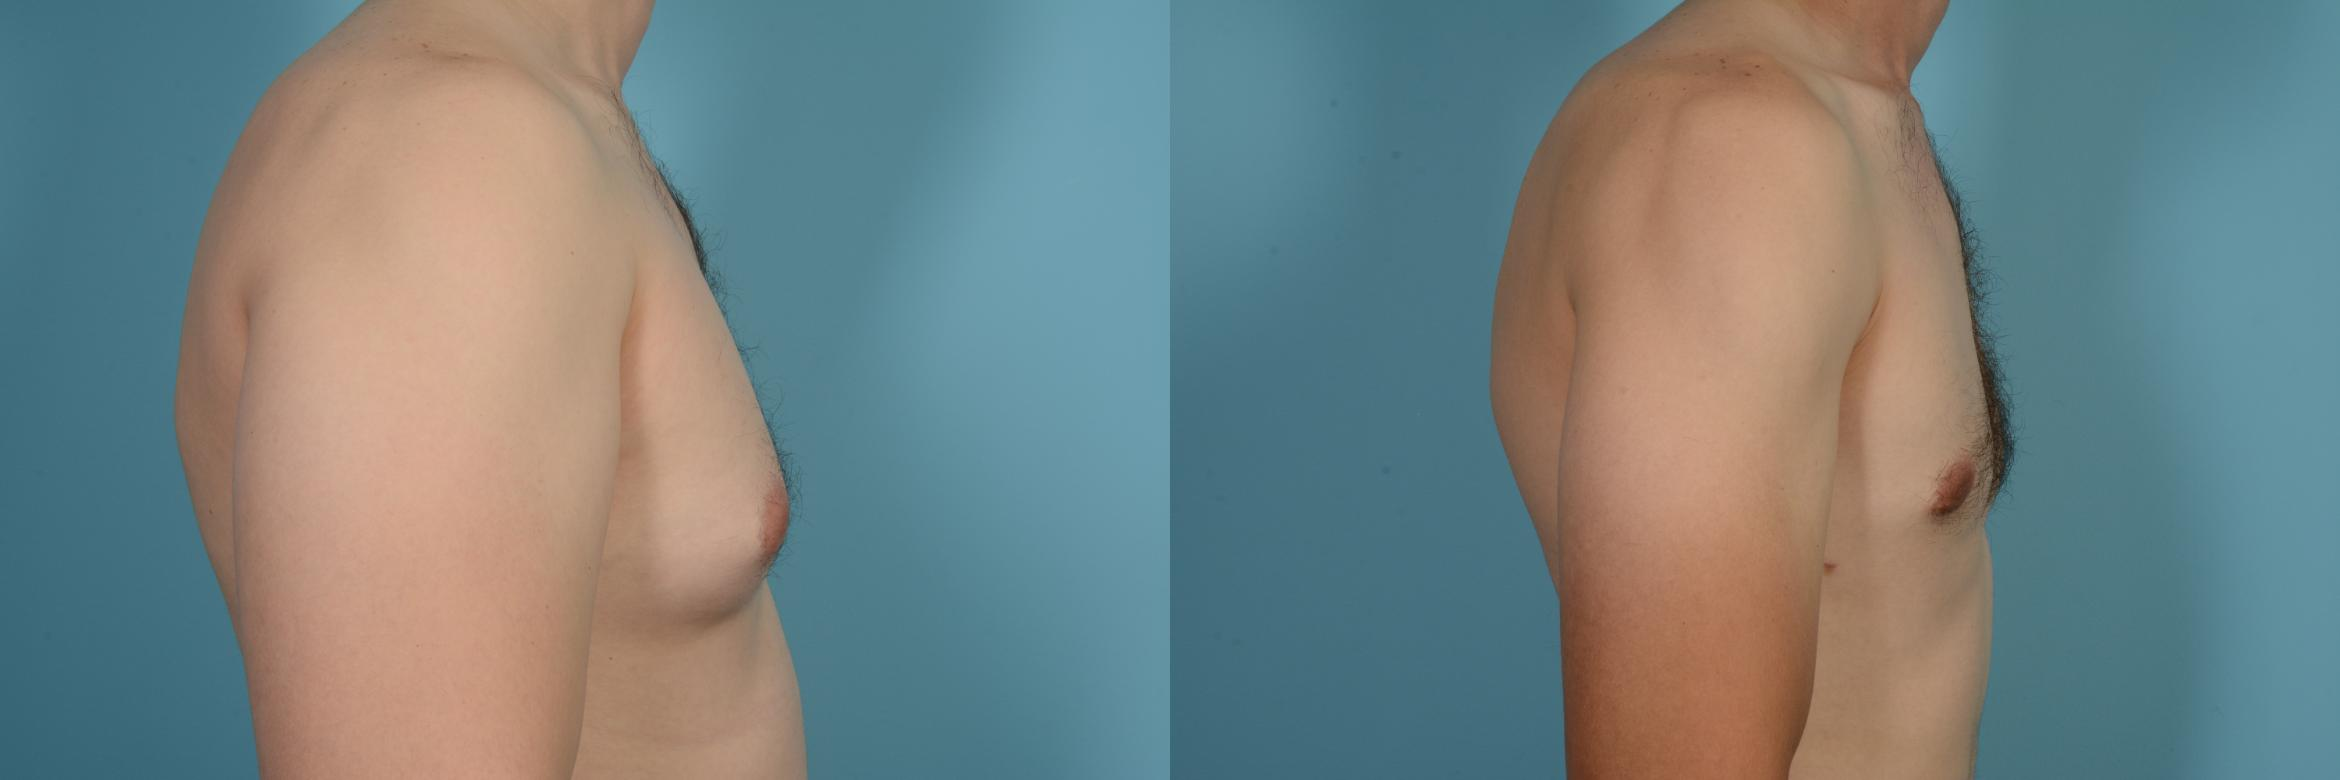 Male Breast Reduction (Gynecomastia) Case 630 Before & After Right Side | Chicago, IL | TLKM Plastic Surgery